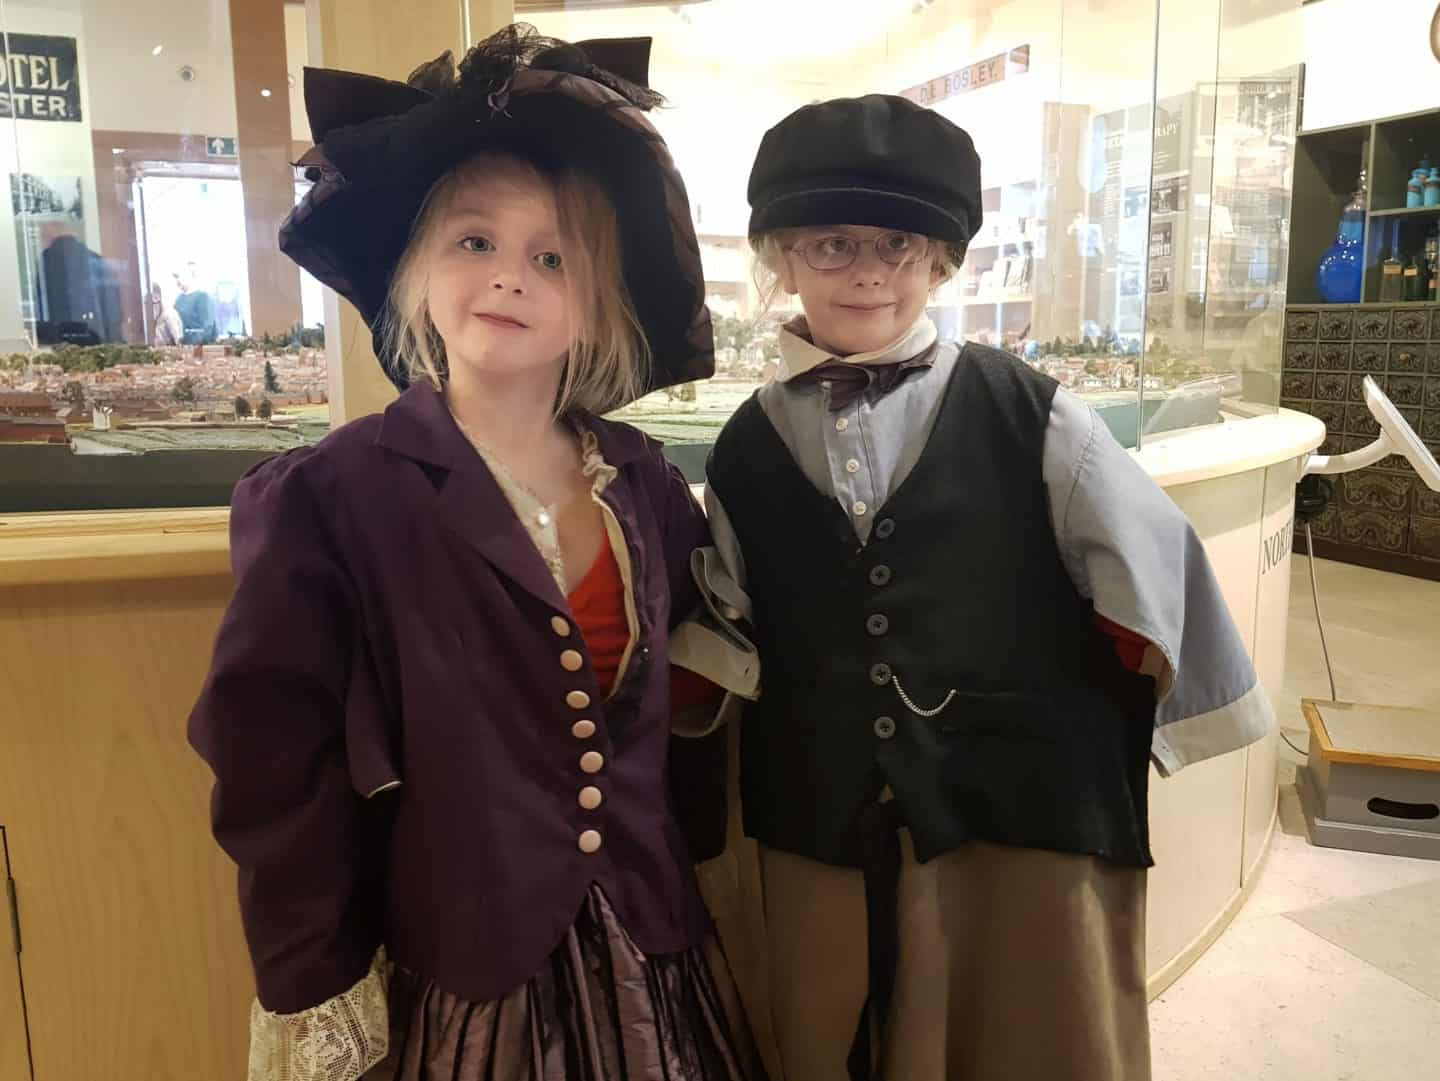 Children dressed in Edwardian outfits at Winchester city museum